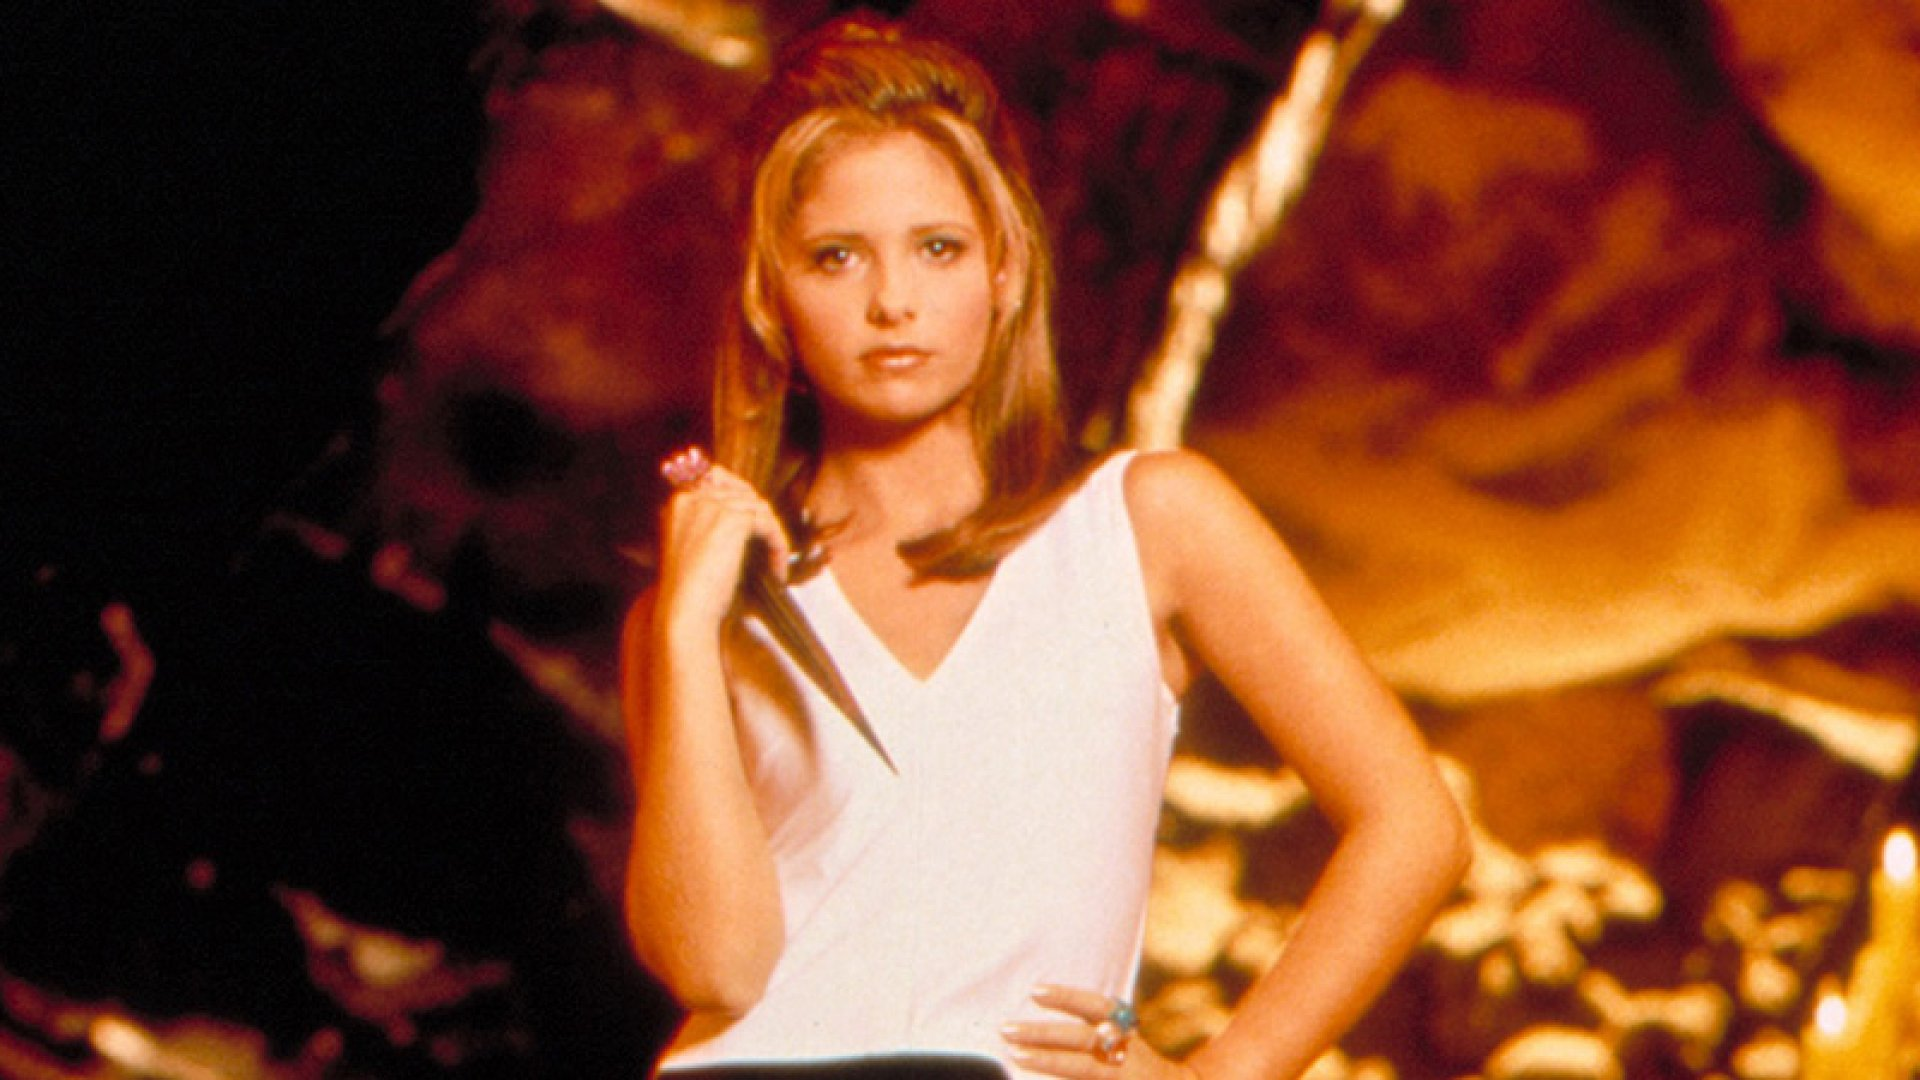 What We Learned About Power From Buffy the Vampire Slayer